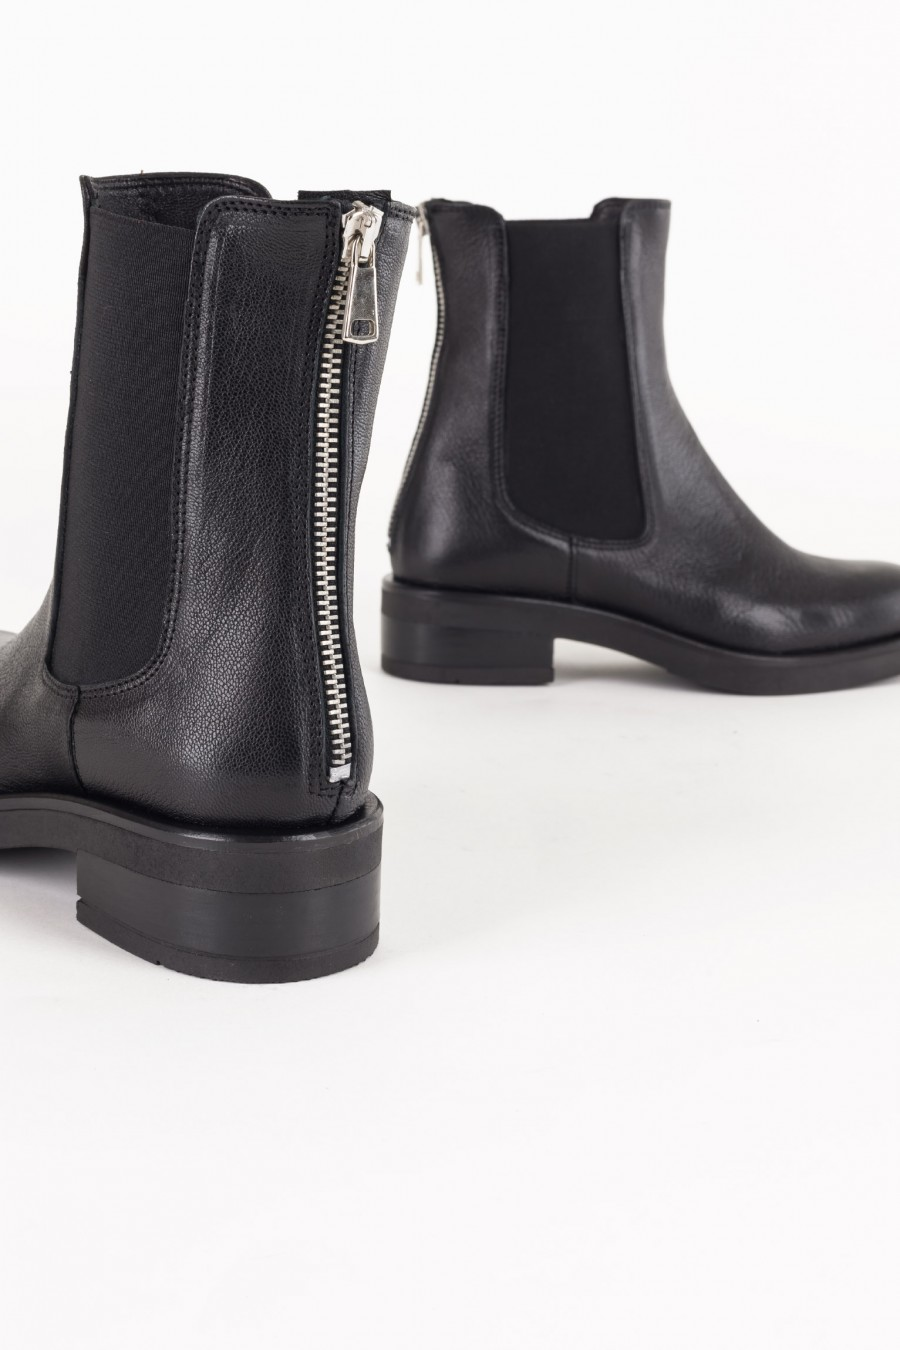 Boots with back zipper